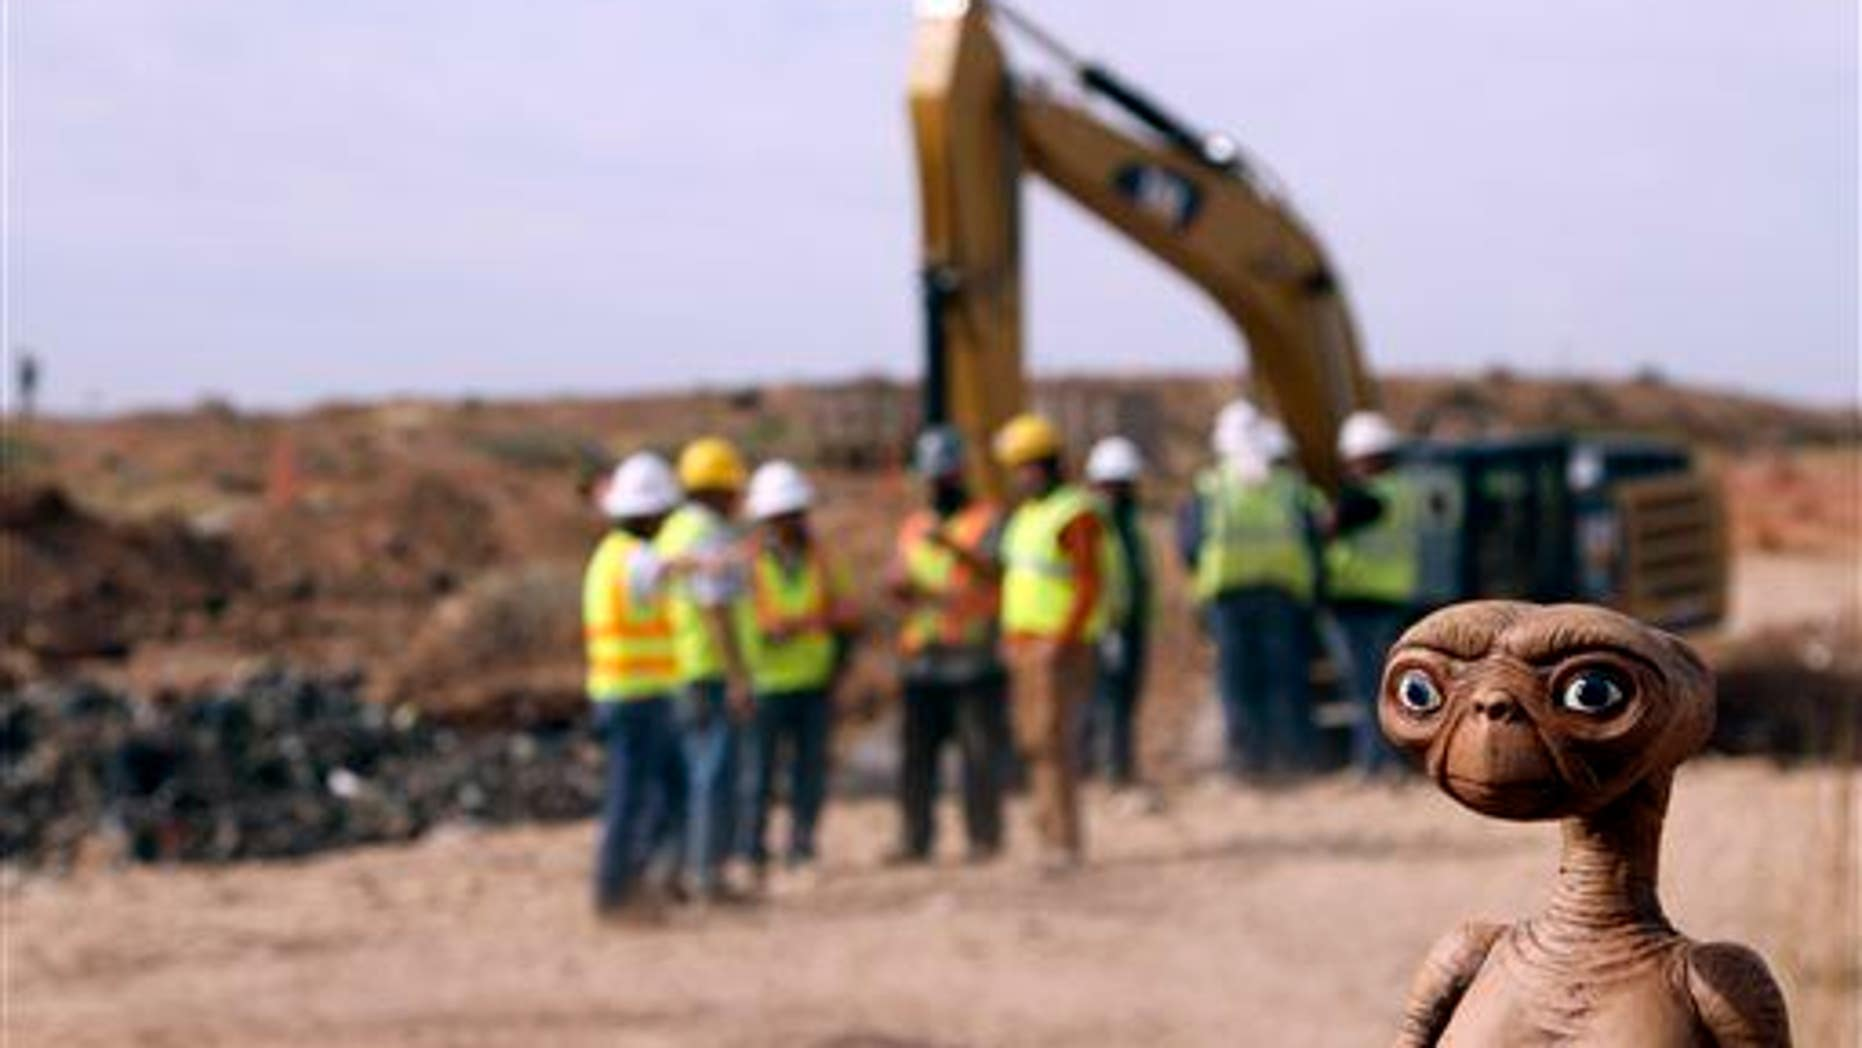 In this April 26, 2014, file photo, an E.T. doll is seen while construction workers prepare to dig into a landfill in Alamogordo, NM.